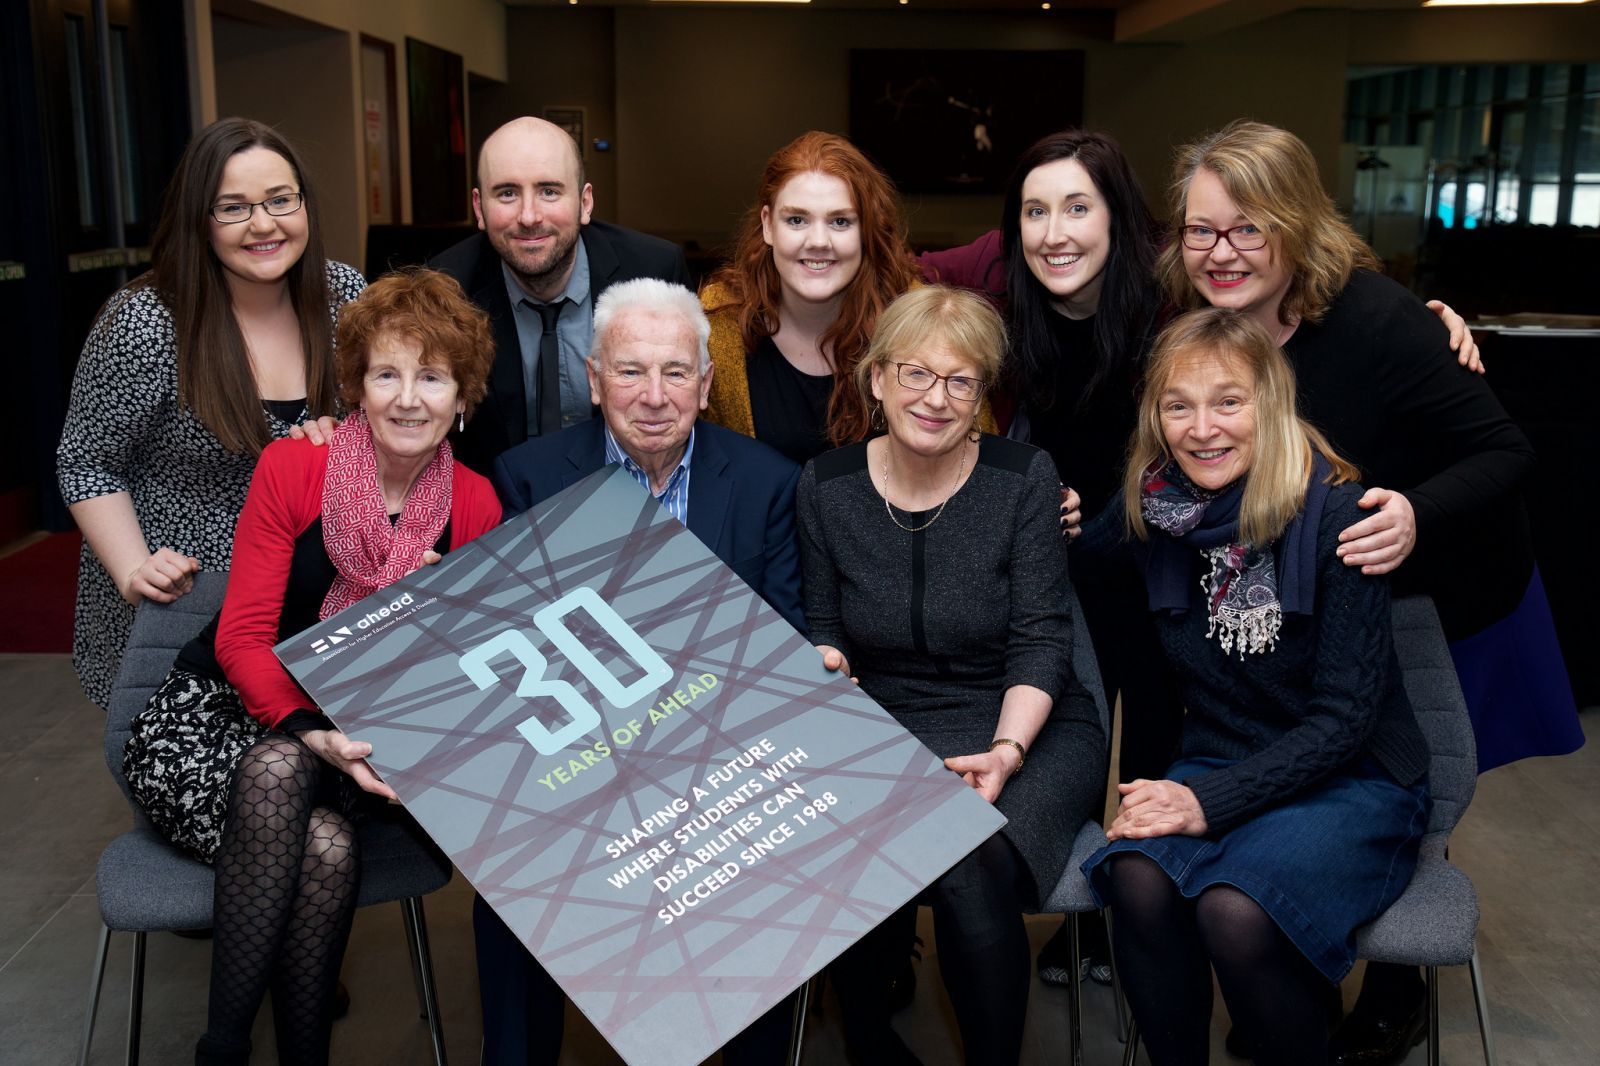 Prof. John Kelly celebrates AHEAD's 30th birthday with AHEAD Director Ann Heelan and the rest of the AHEAD team